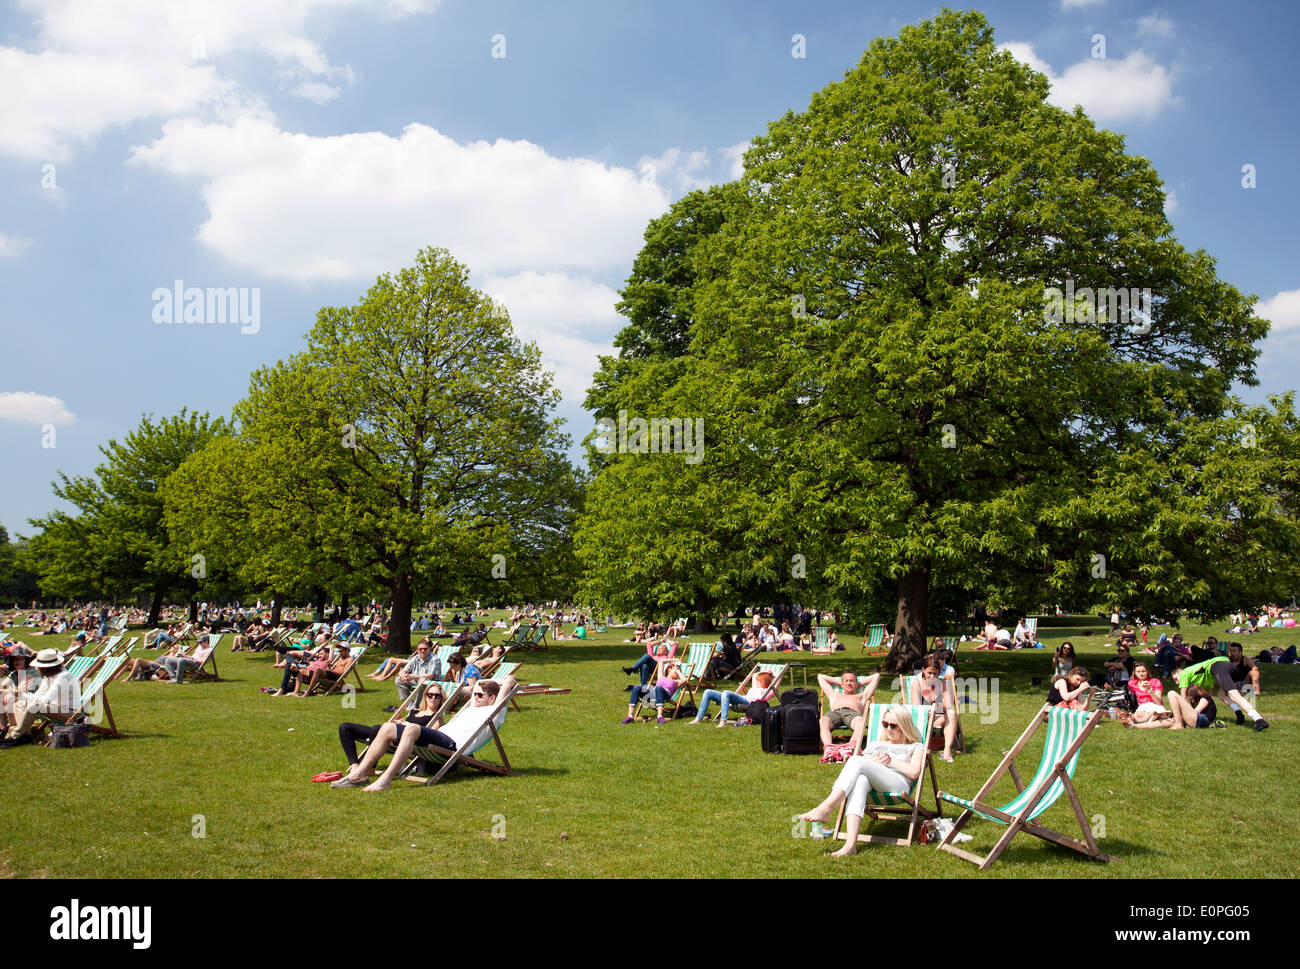 People enjoy a sunny May day in Hyde Park, London - Stock Image